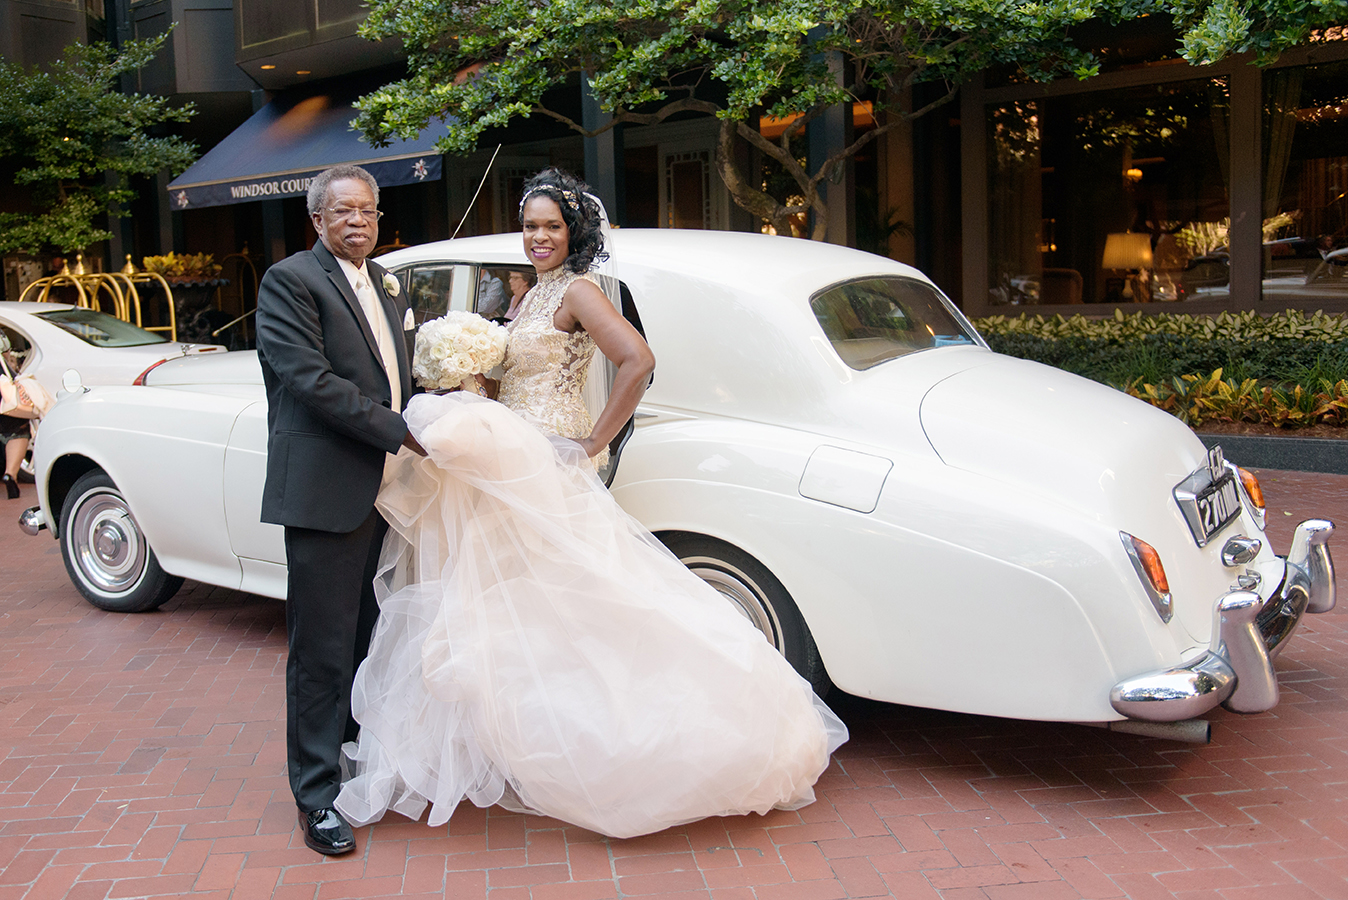 Doliecha and her father traveled in a vintage car to the wedding ceremony.